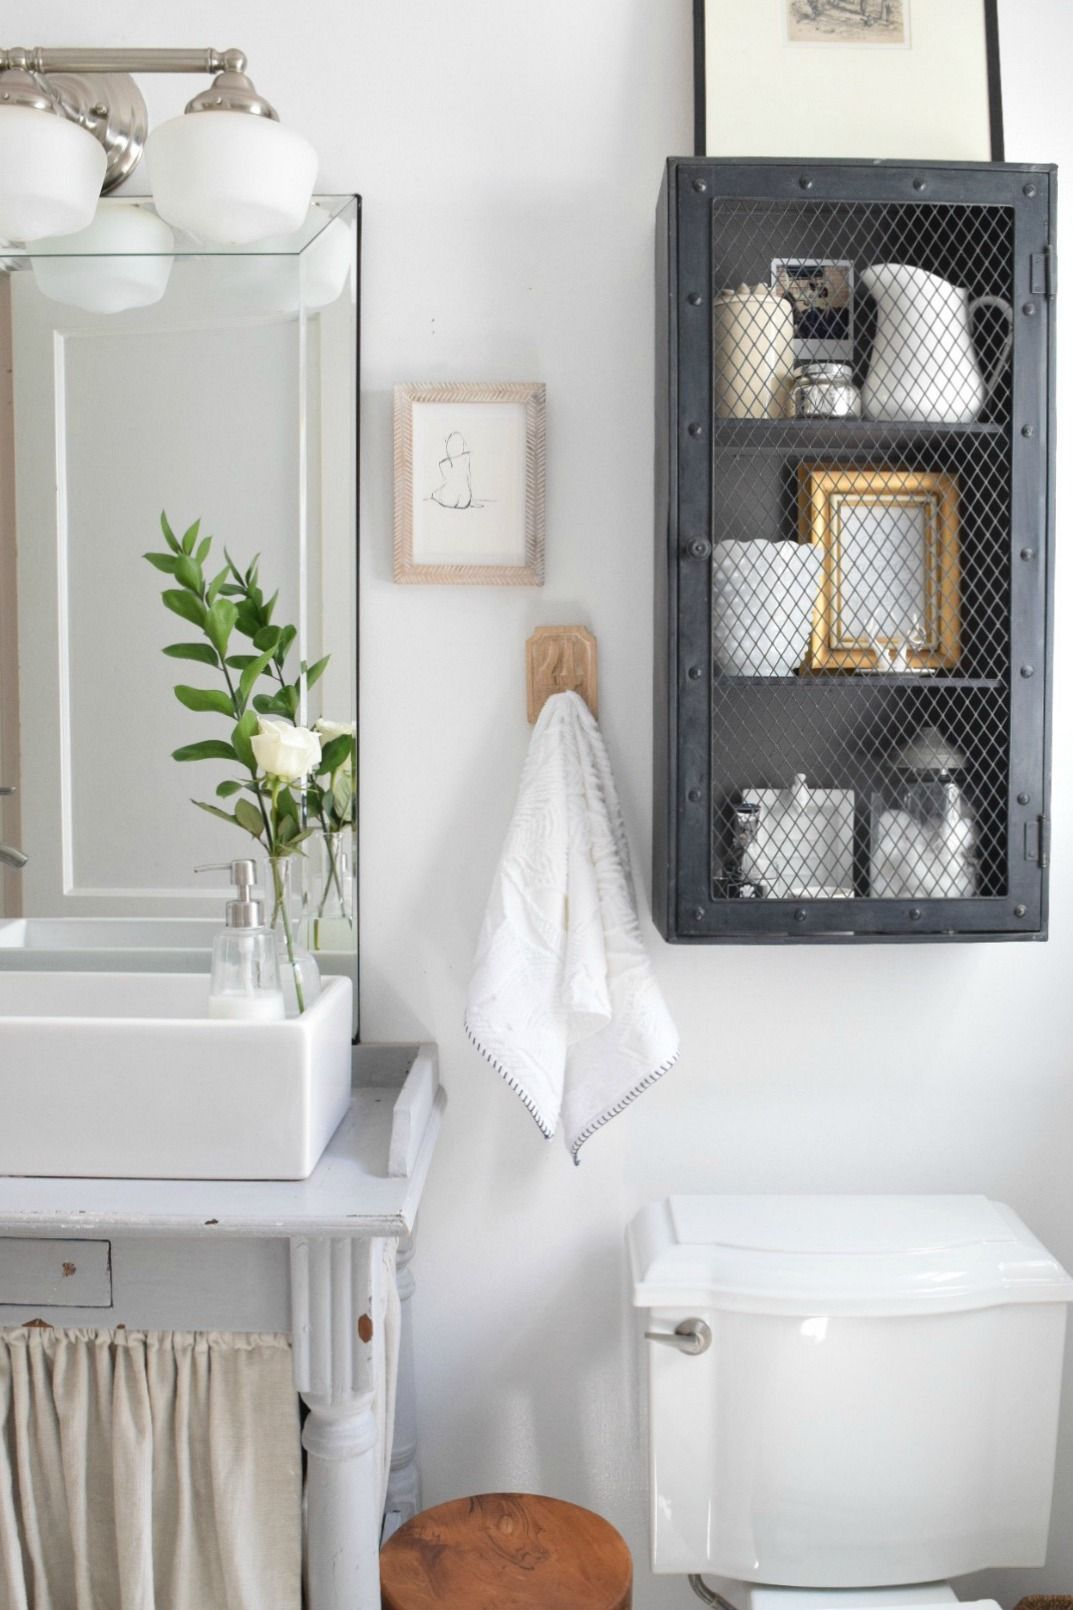 Small Bathroom Ideas And Solutions In Our Tiny Cape Small - Storage solutions for small bathrooms for small bathroom ideas